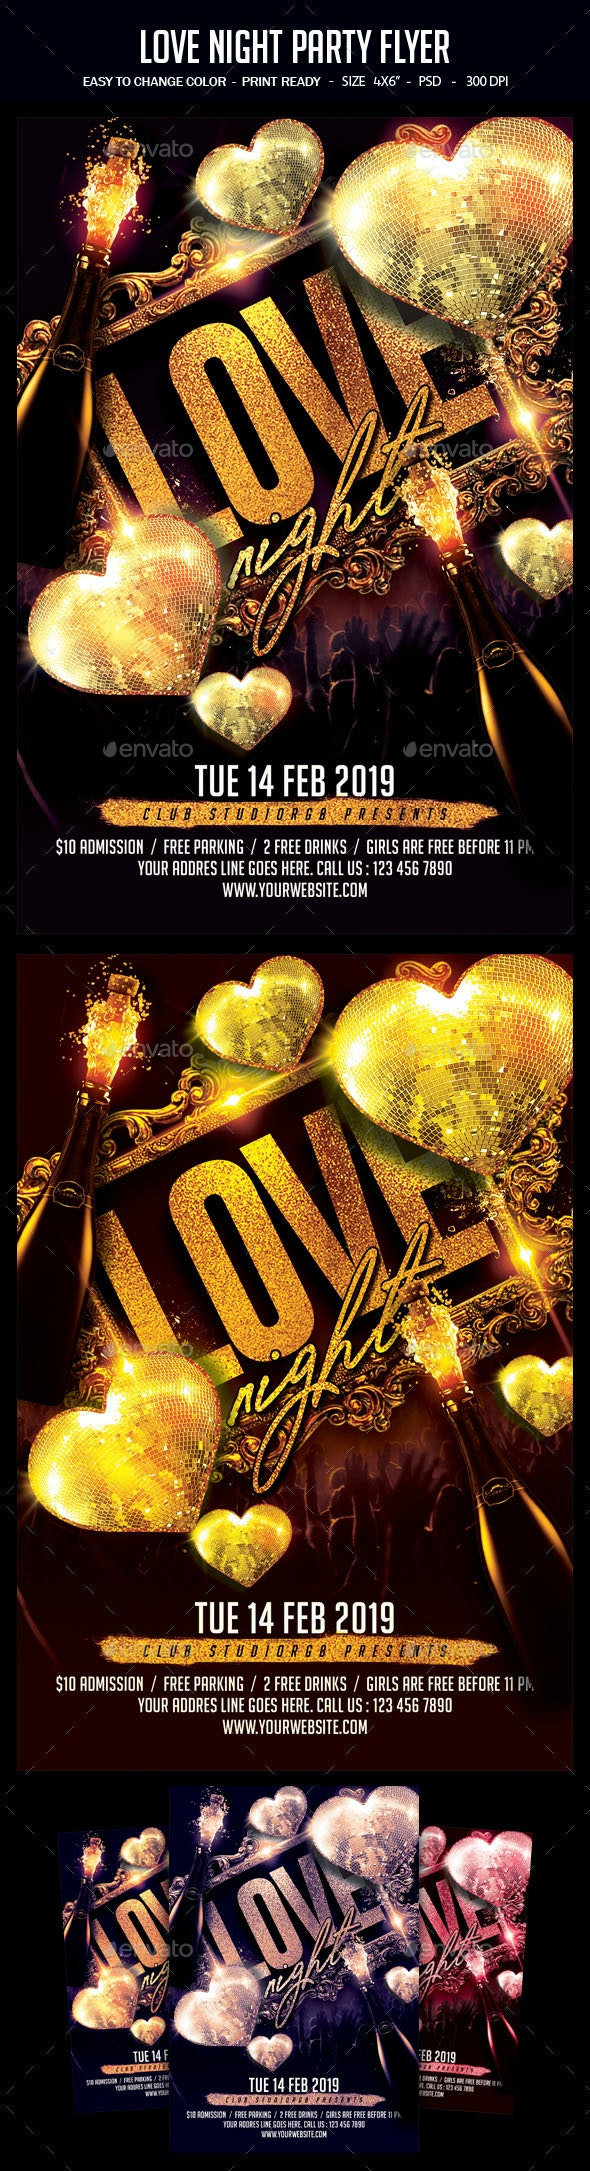 Love Night Party Flyer - Clubs & Parties Events